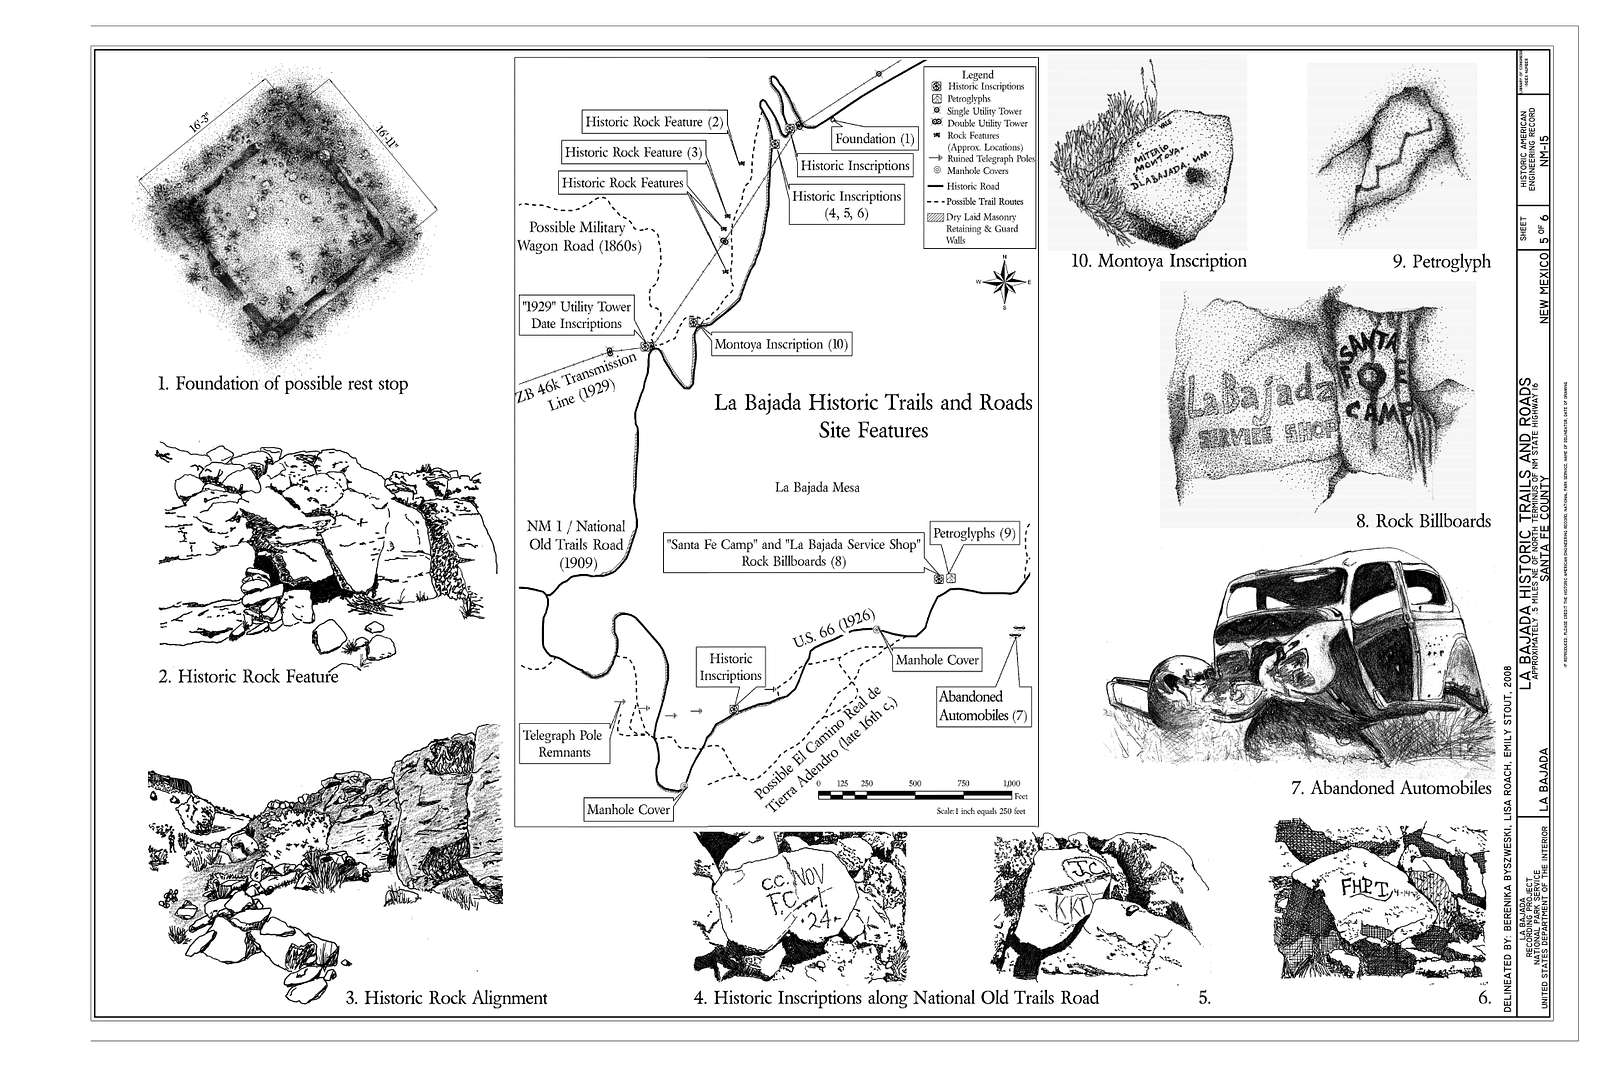 La Bajada Historic Trails and Roads, Approximately 1 mile East/Northeast of intersection of State Highway 16 and Indian Service Road 841, La Bajada, Santa Fe County, NM